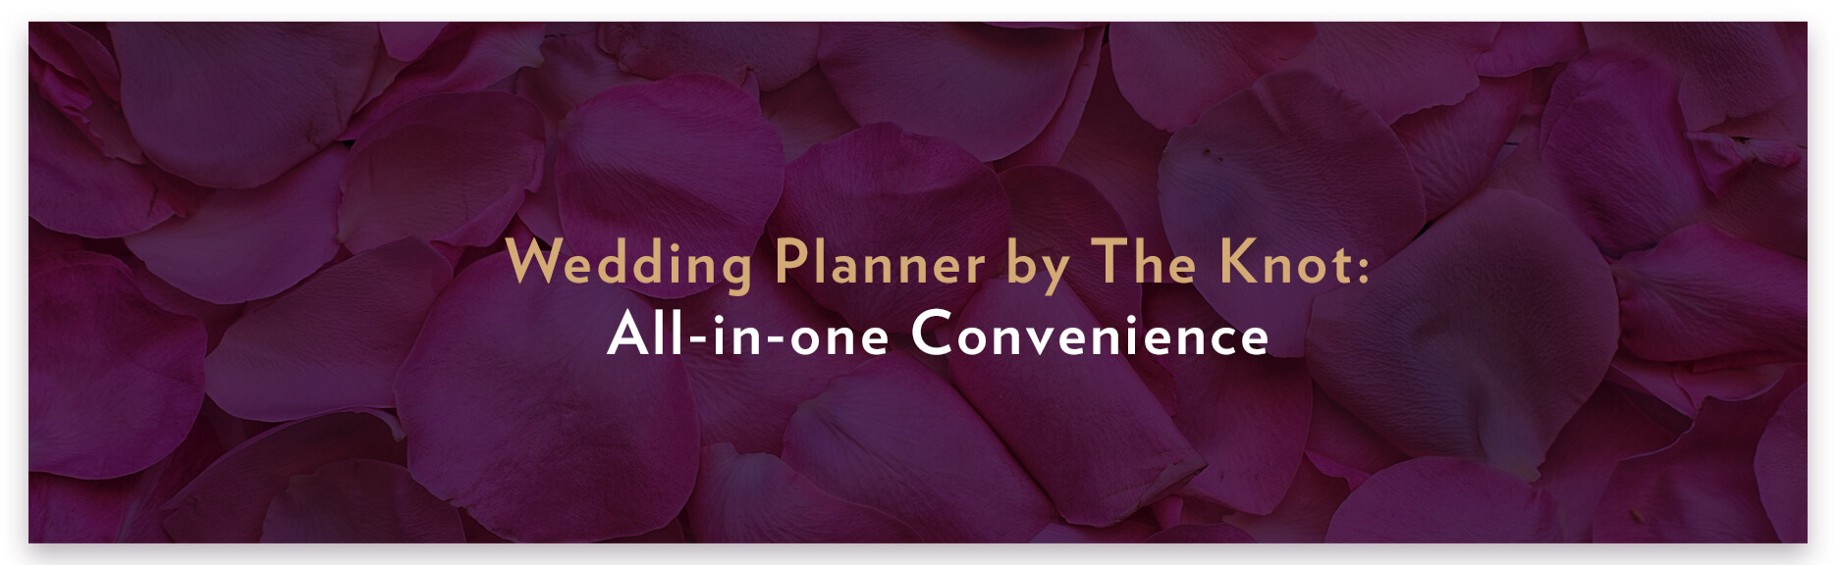 1542b8cd89a9 We hope our list helps you make your wedding-planning experience less  intimidating, less fundamentally exhausting, and more rewarding overall.